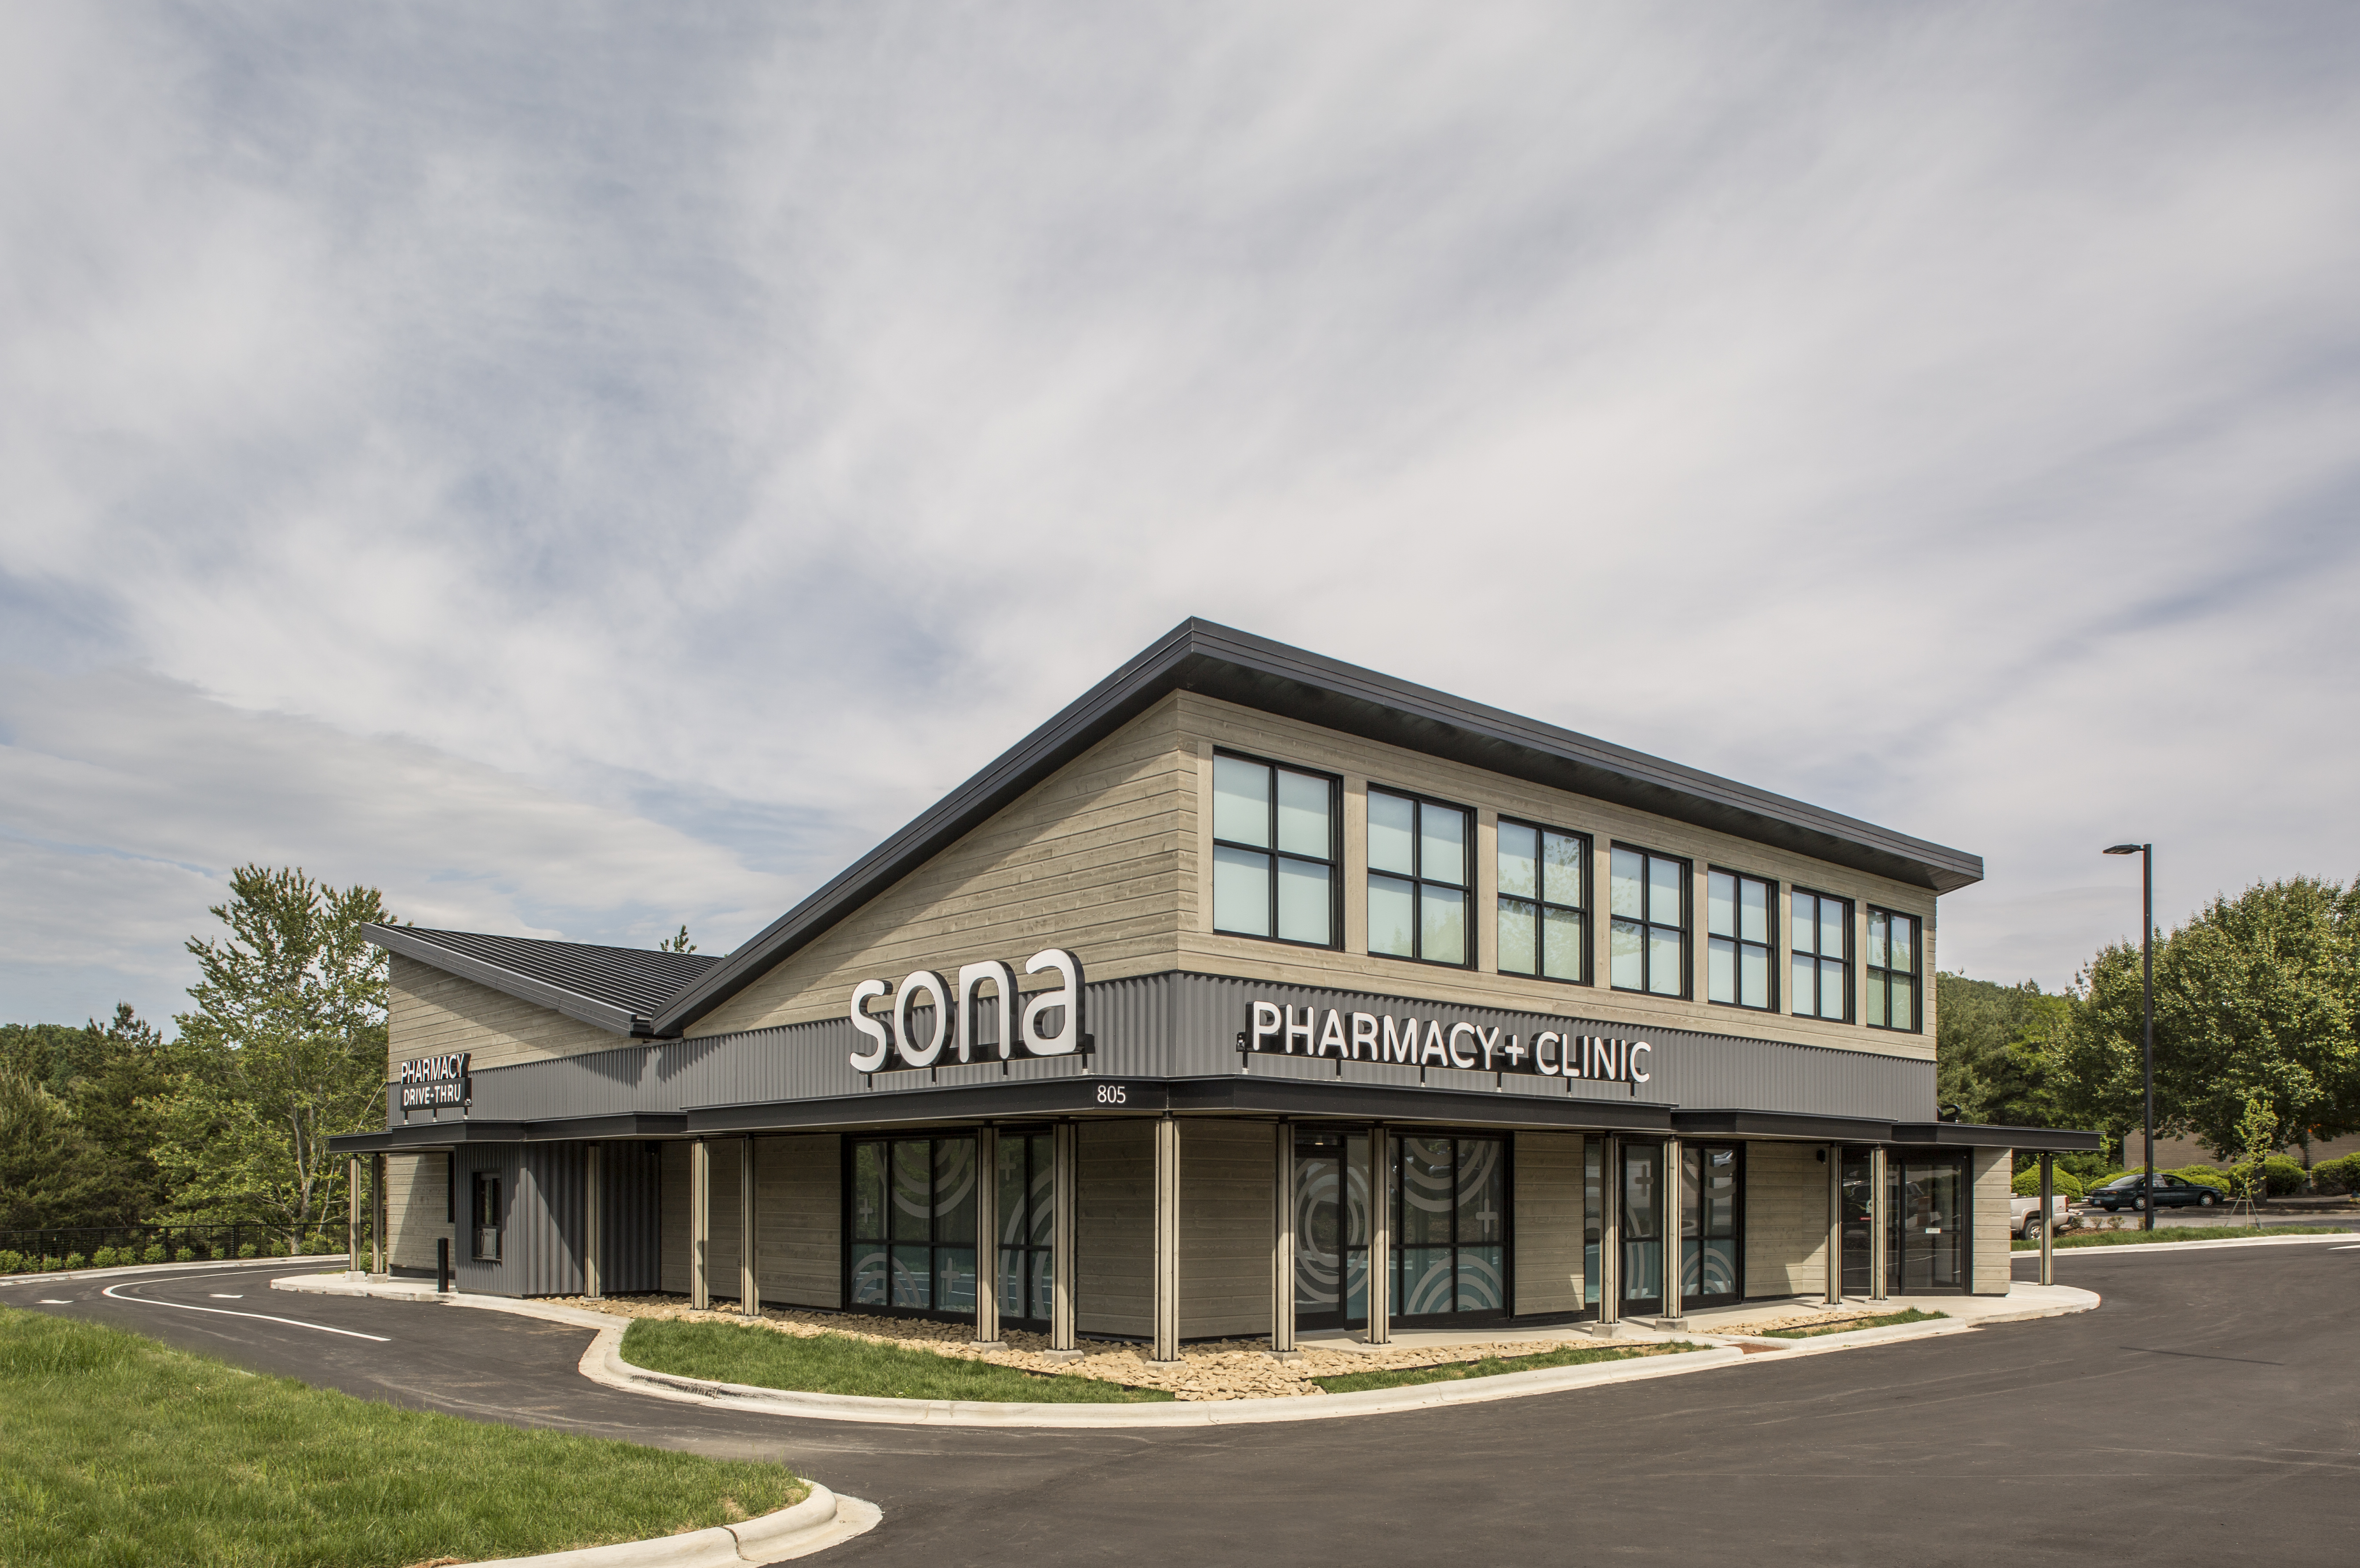 New pharmacy and clinic opens in East Asheville